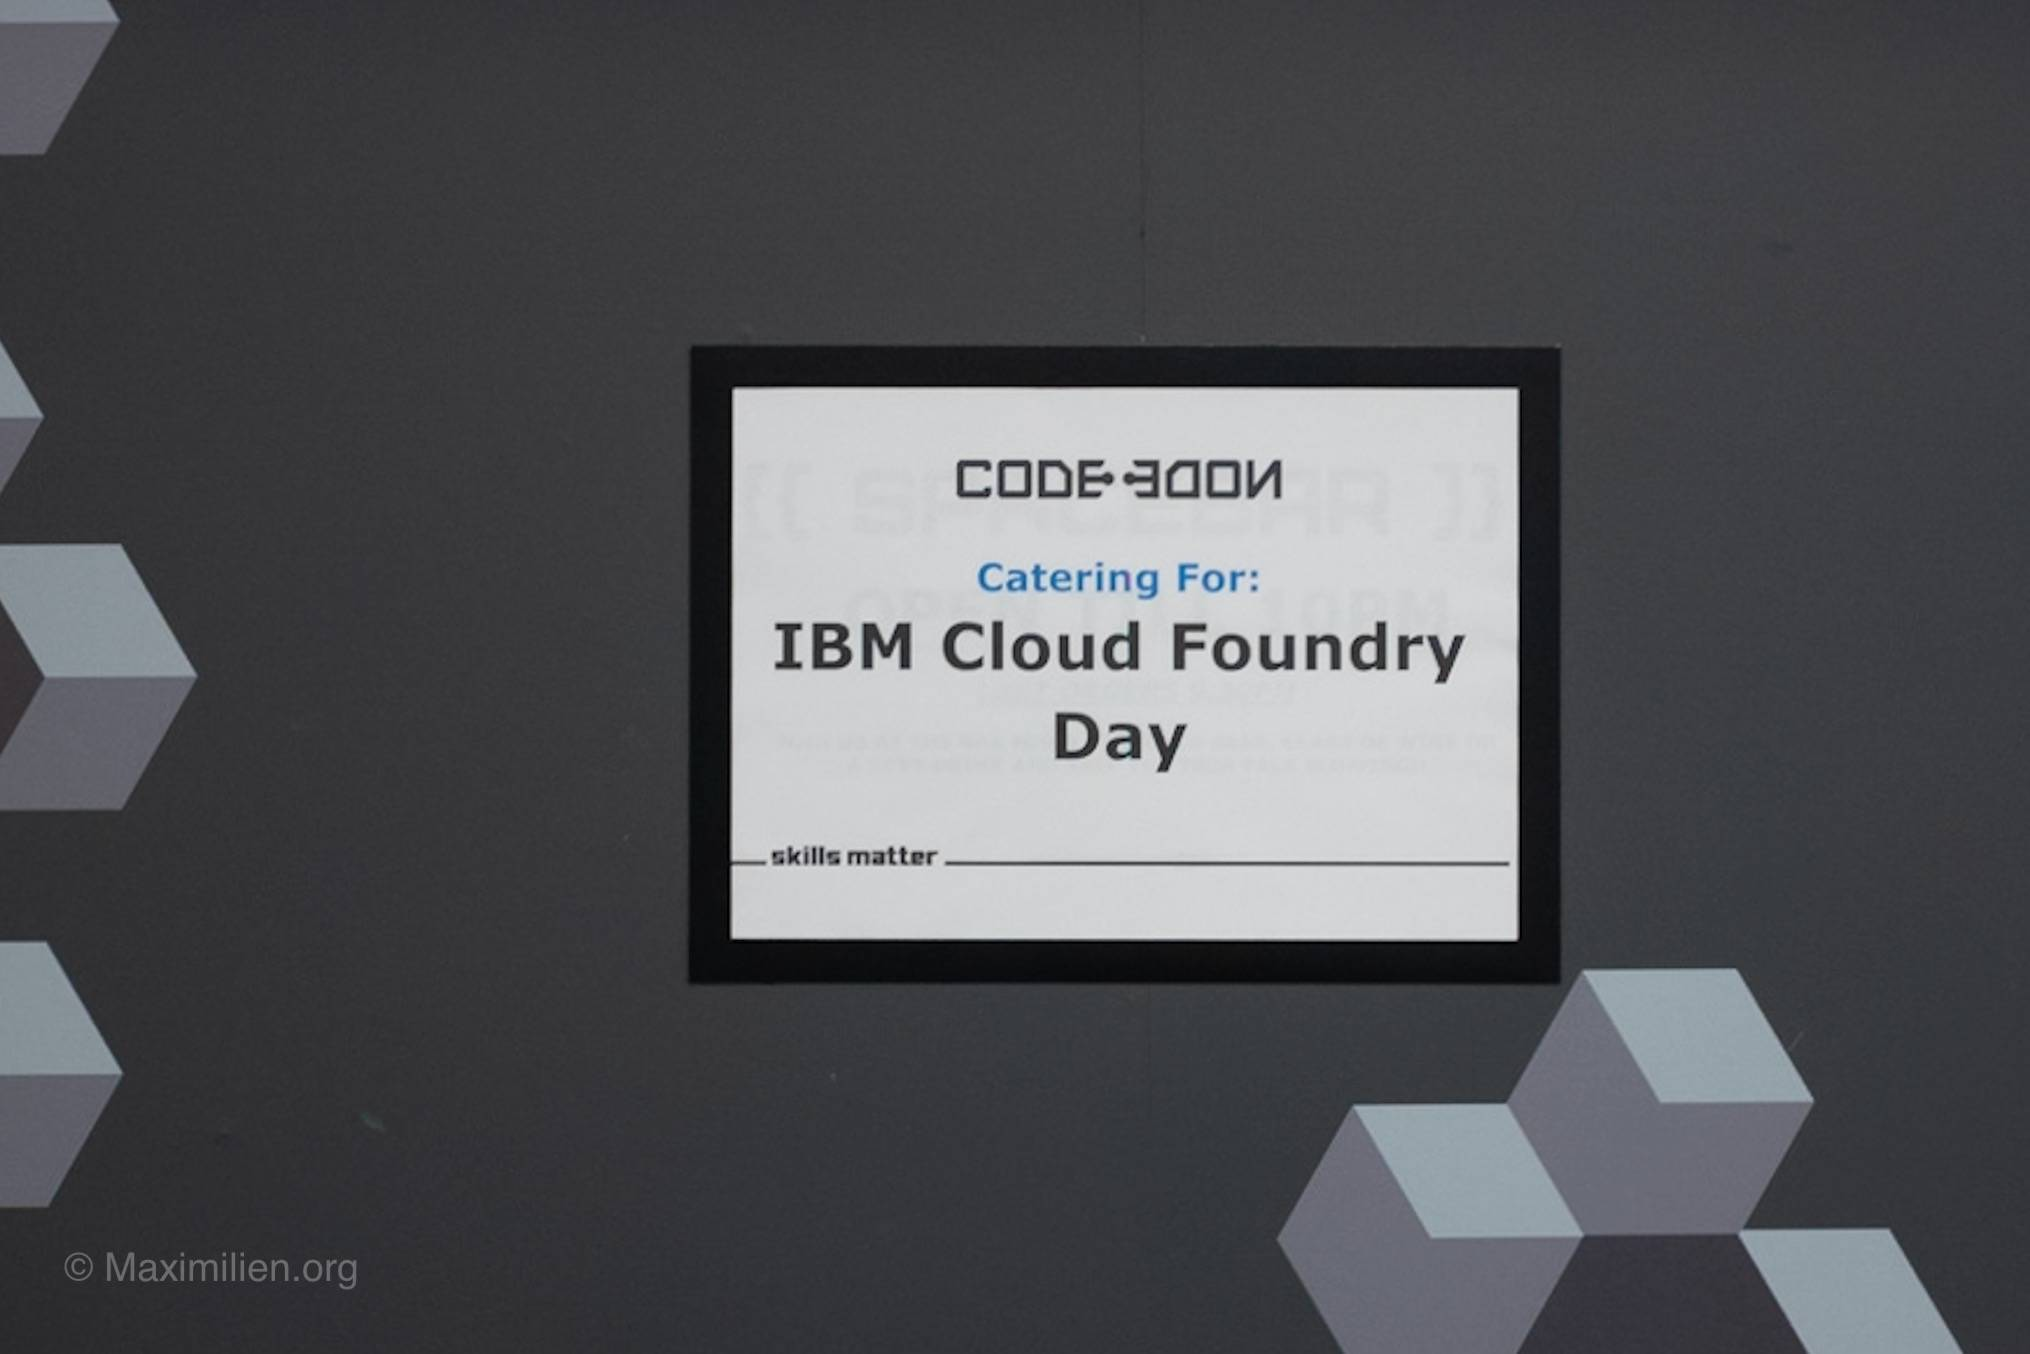 IBM Cloud Foundry Day in London in 2018